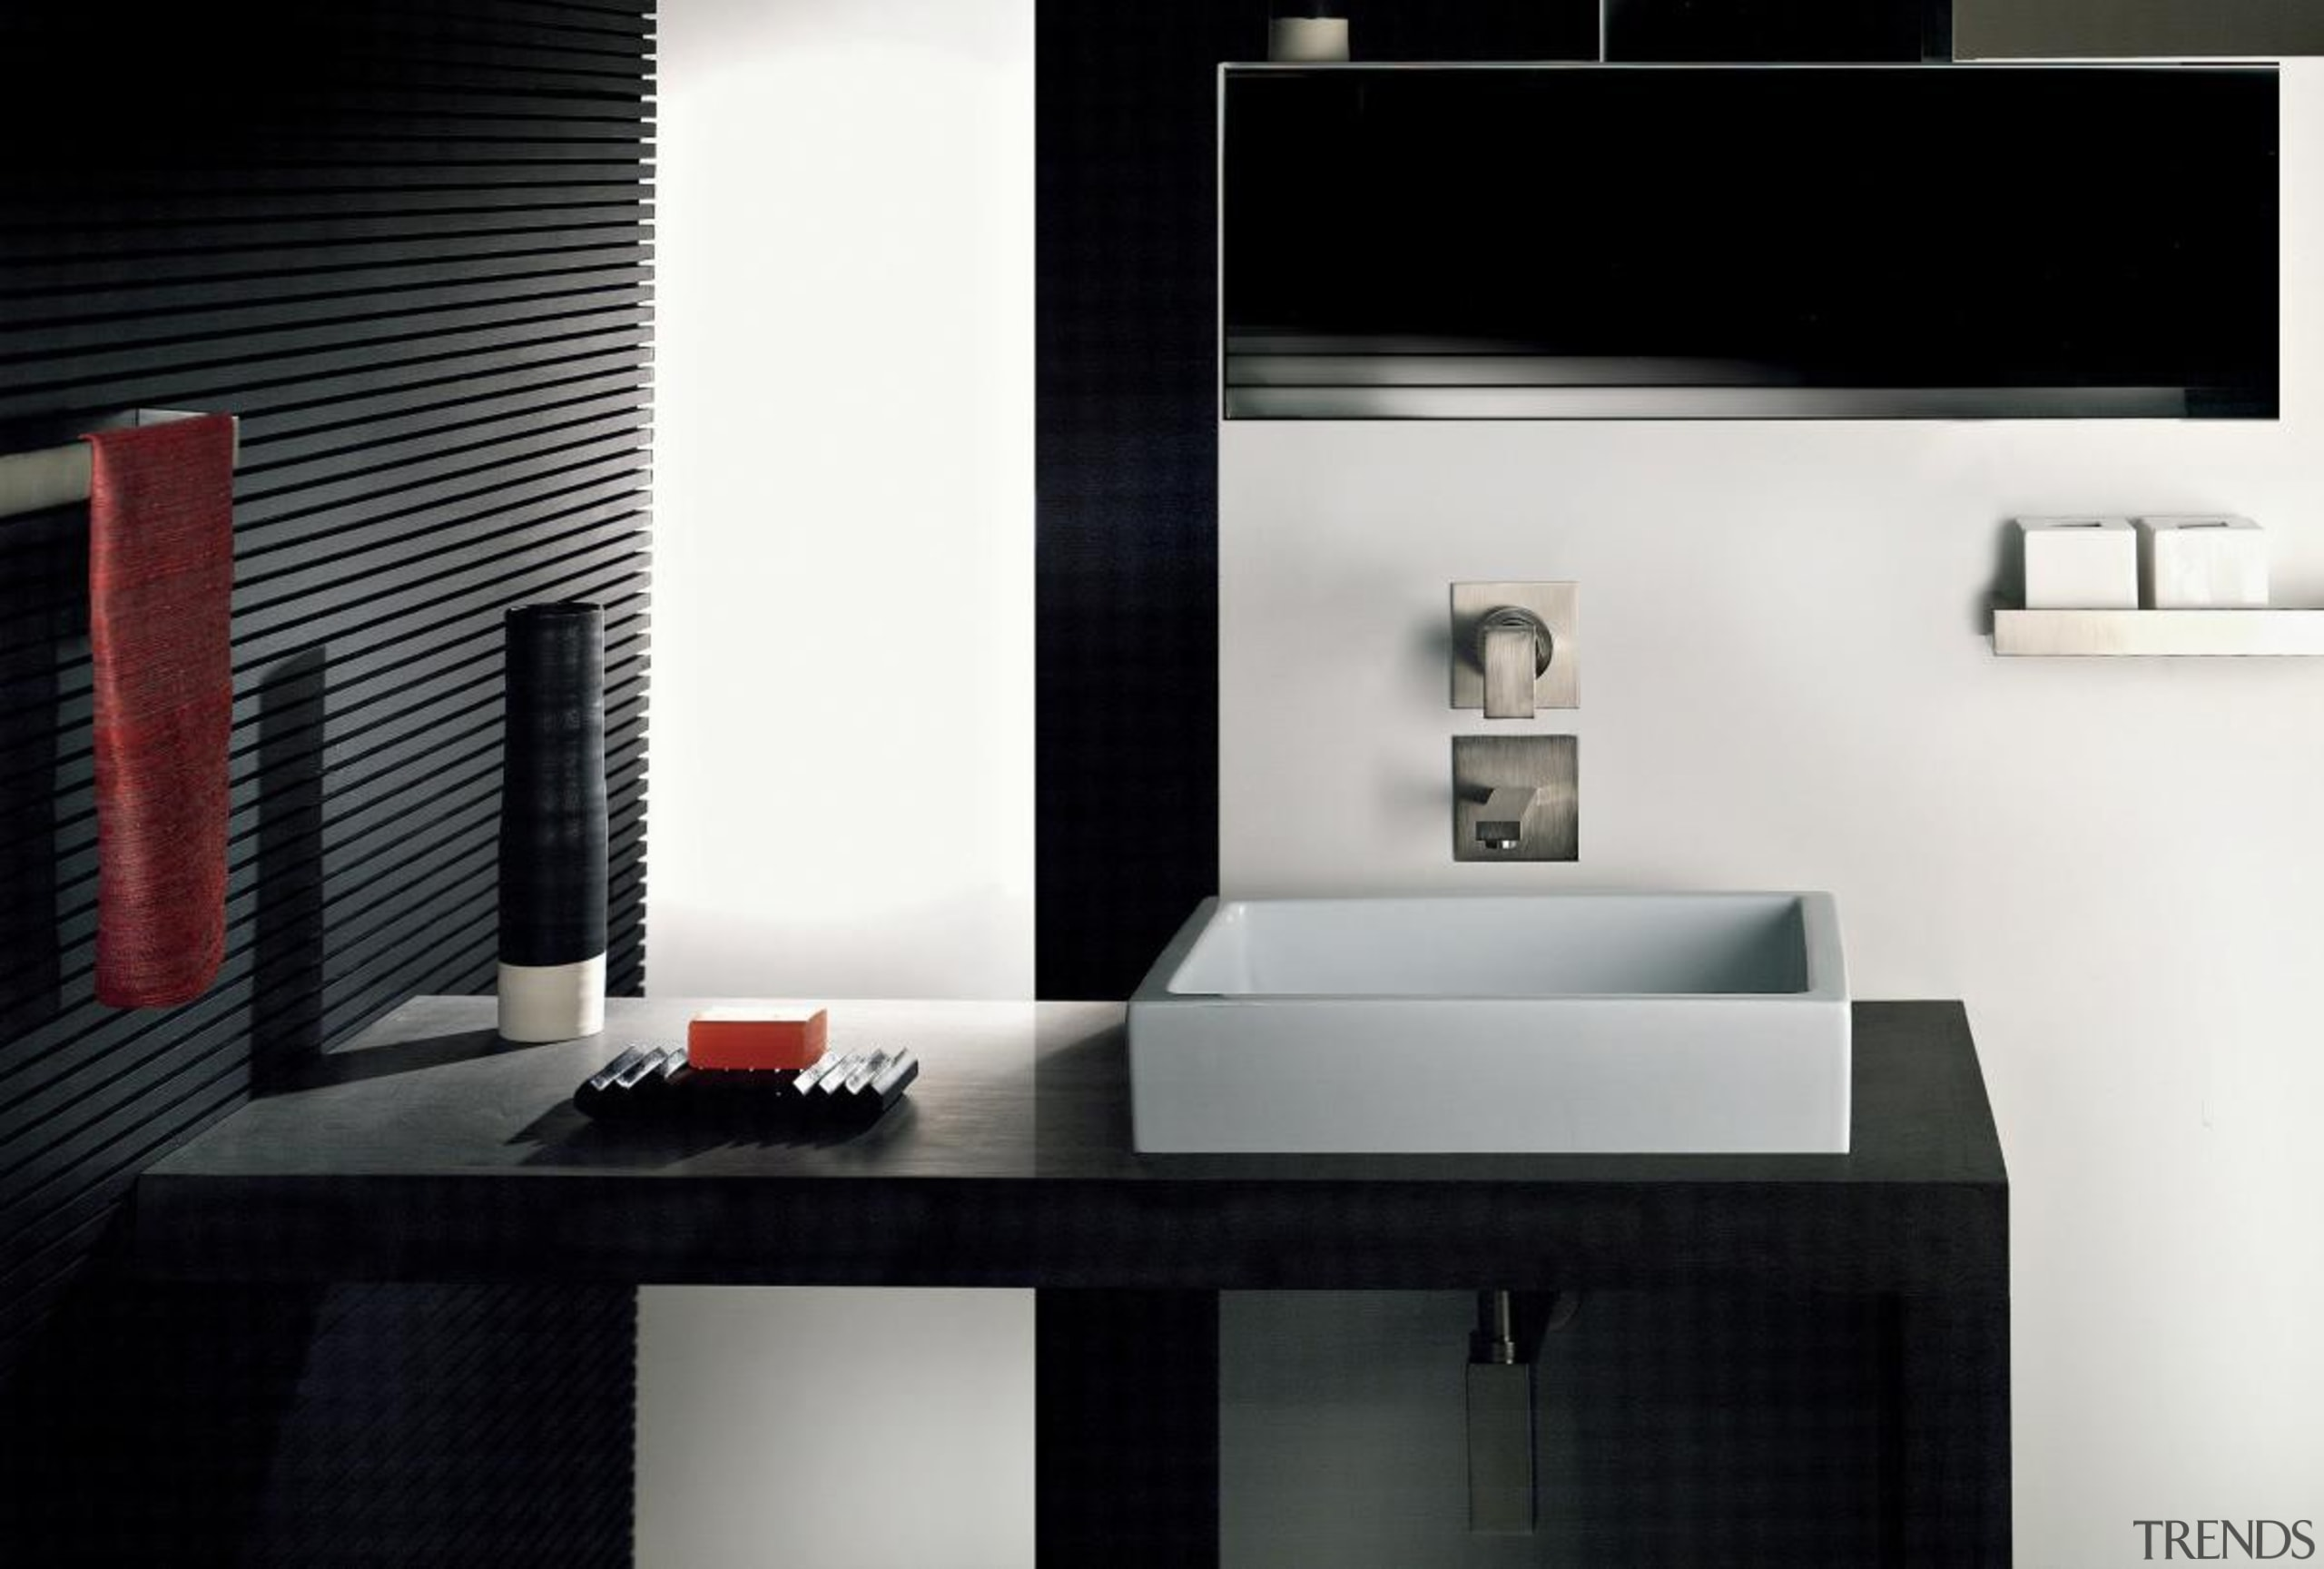 When planning a new bathroom, you want to bathroom, bathroom accessory, interior design, plumbing fixture, product, room, sink, tap, black, white